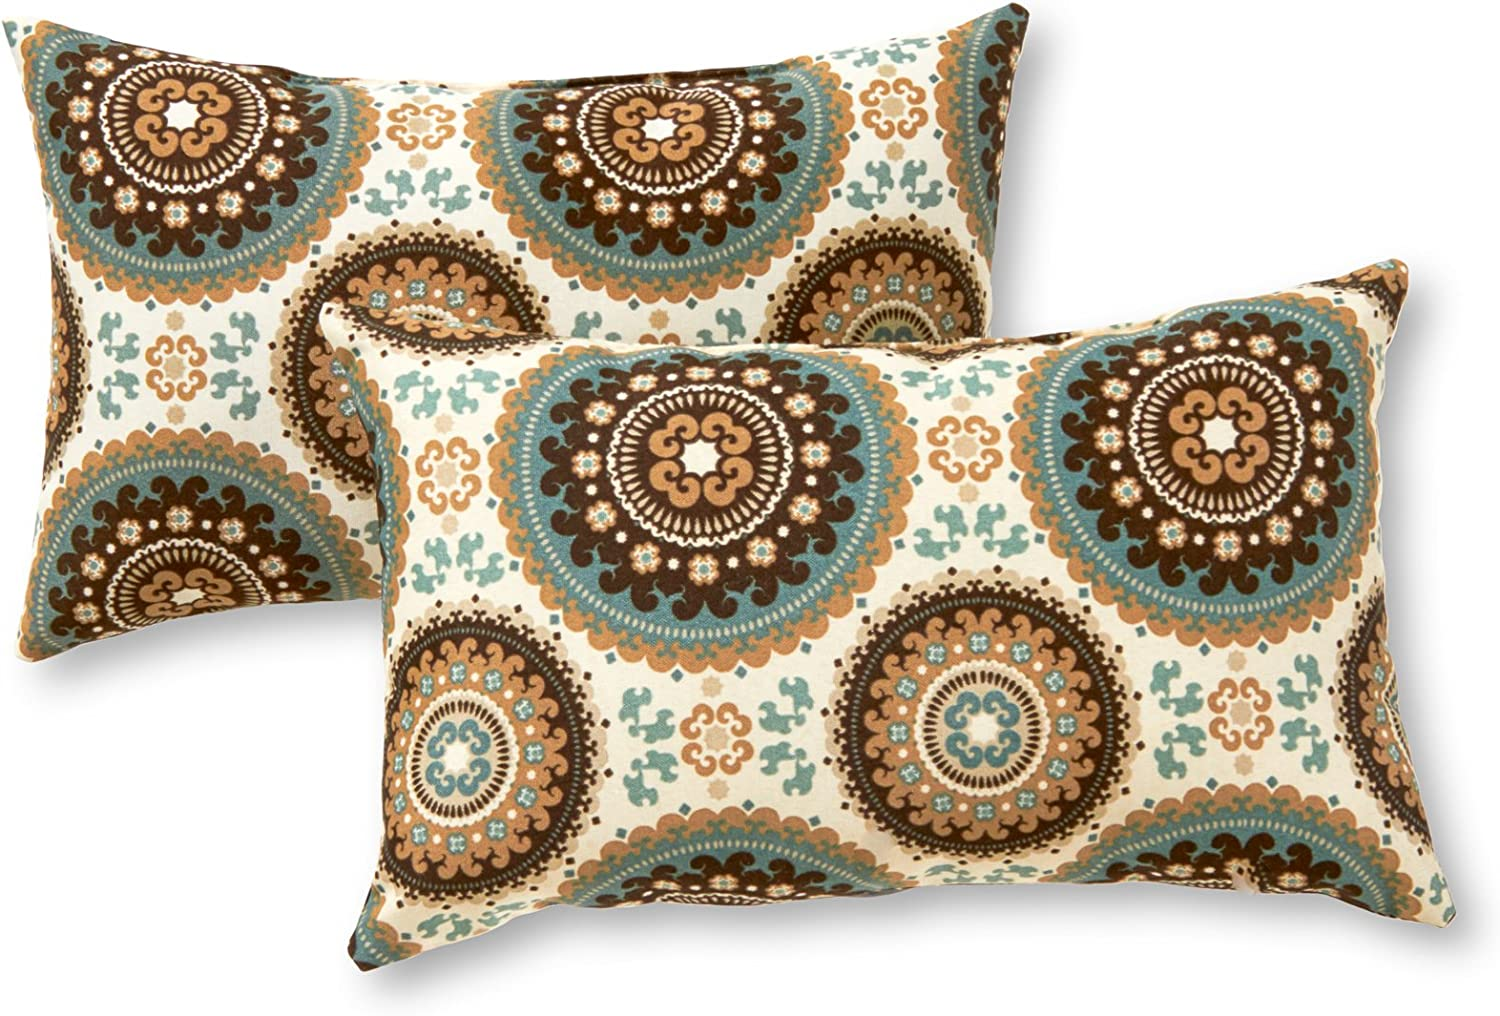 Greendale Home Fashions Set of 2 Outdoor 19x12-inch Rectangle Throw Pillows, Sage Medallion